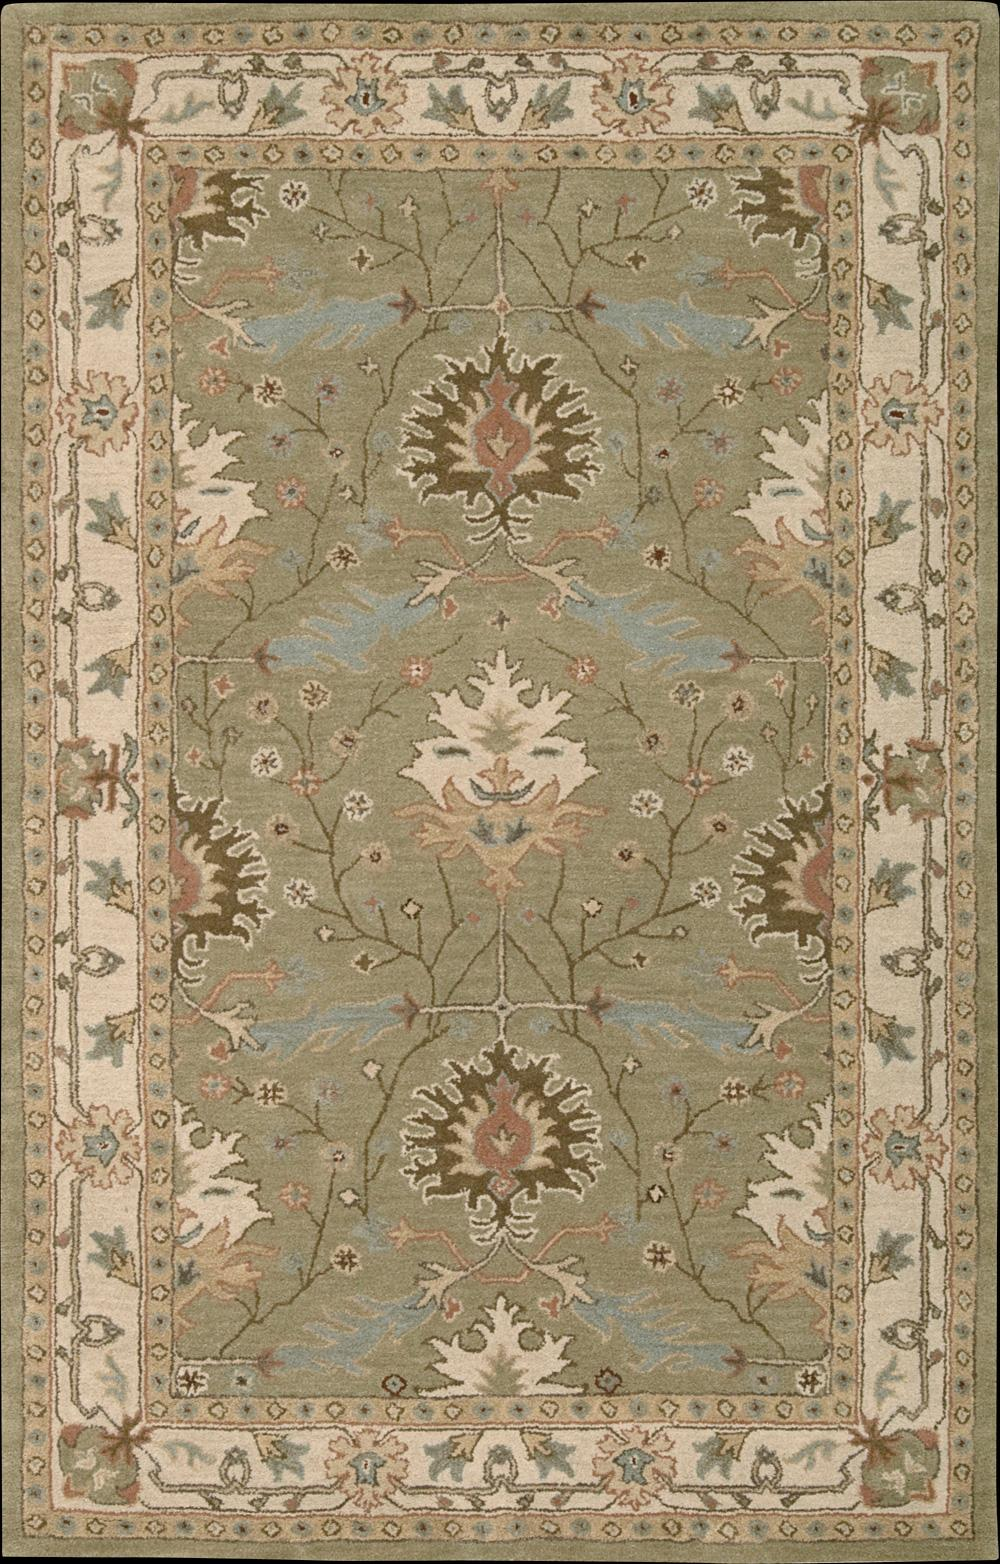 Nourison India House Area Rug 5' x 8' - Item Number: 208